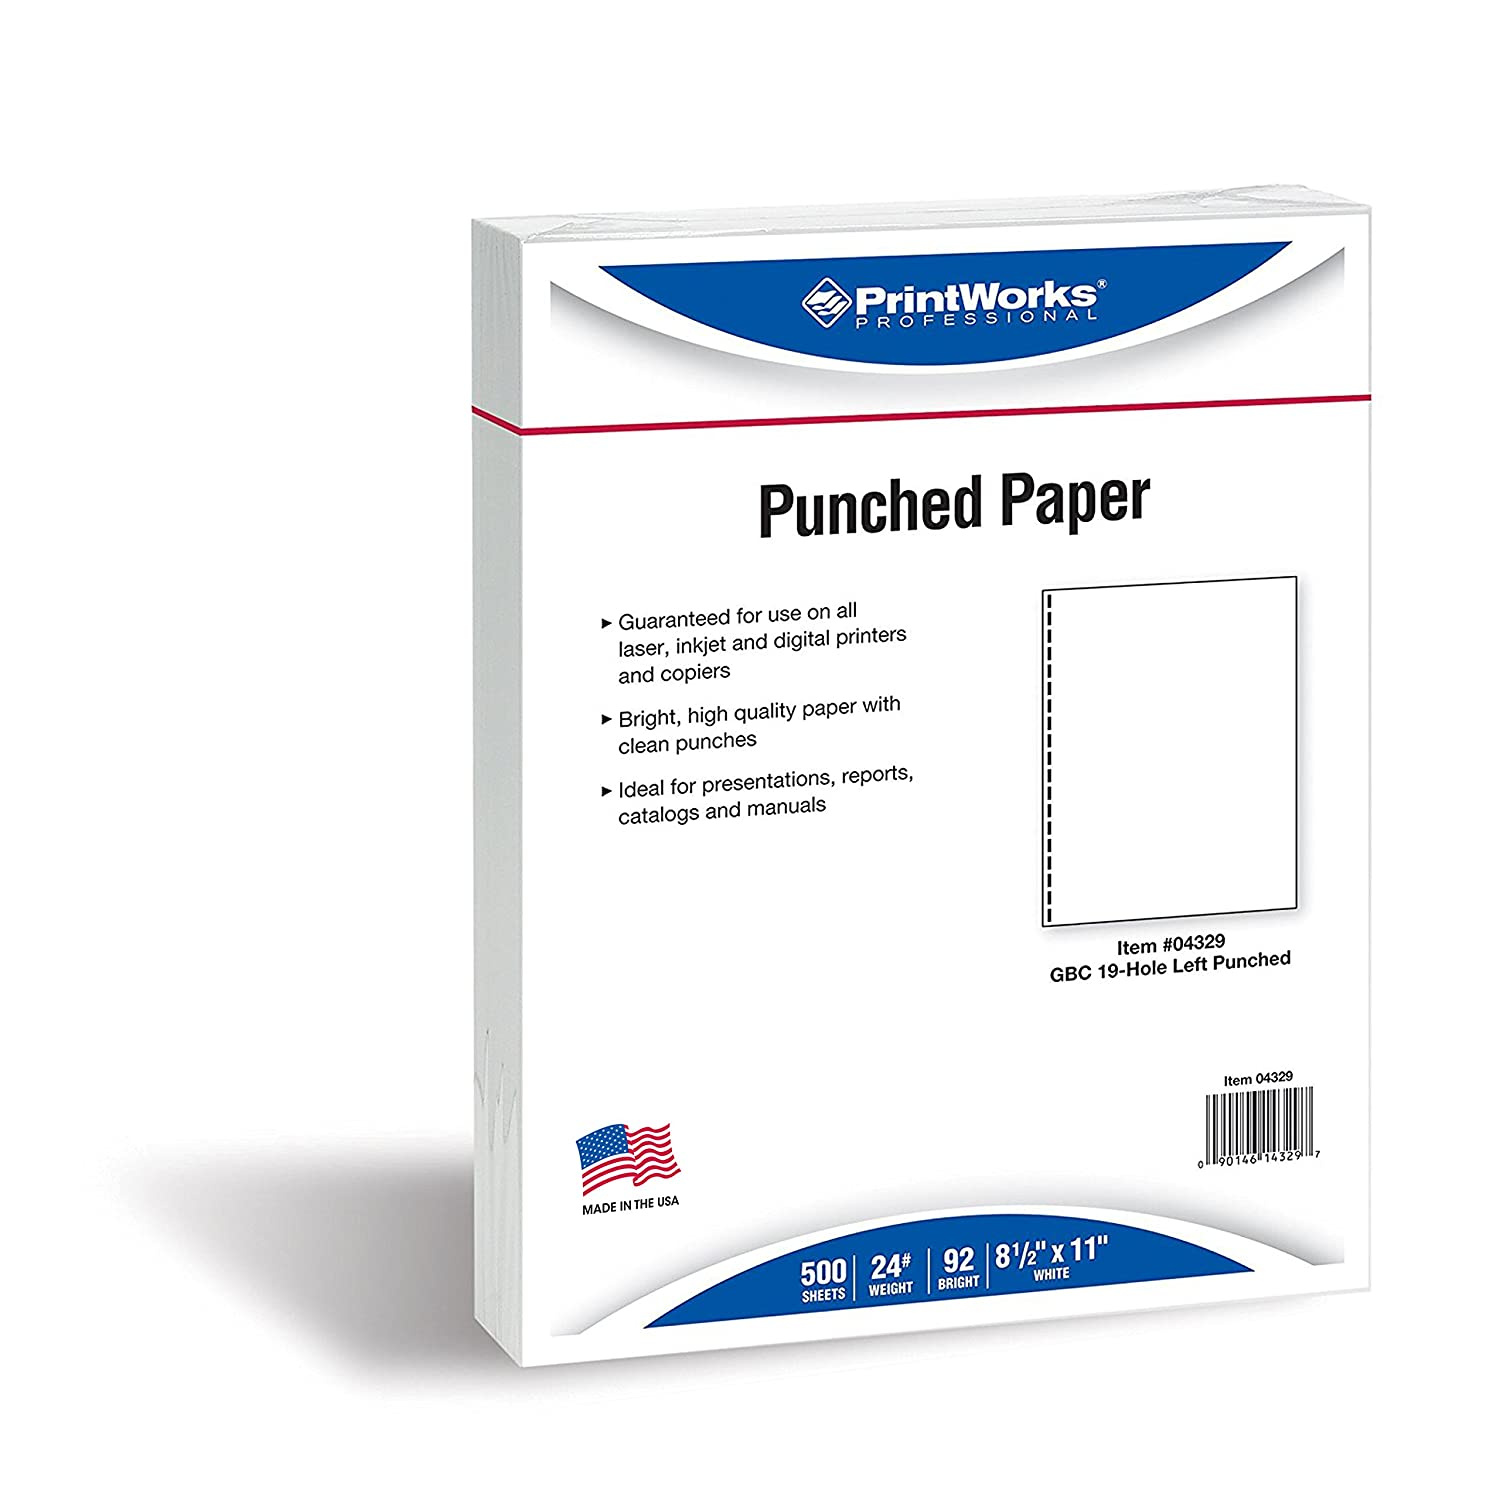 PrintWorks Professional Prepunched Paper, 8.5 x 11, 11kg, GBC CombBind 19-Hole Punched Report & Presentation Paper, 500 Sheets, White (04329) B01LXS02VG  24 lb